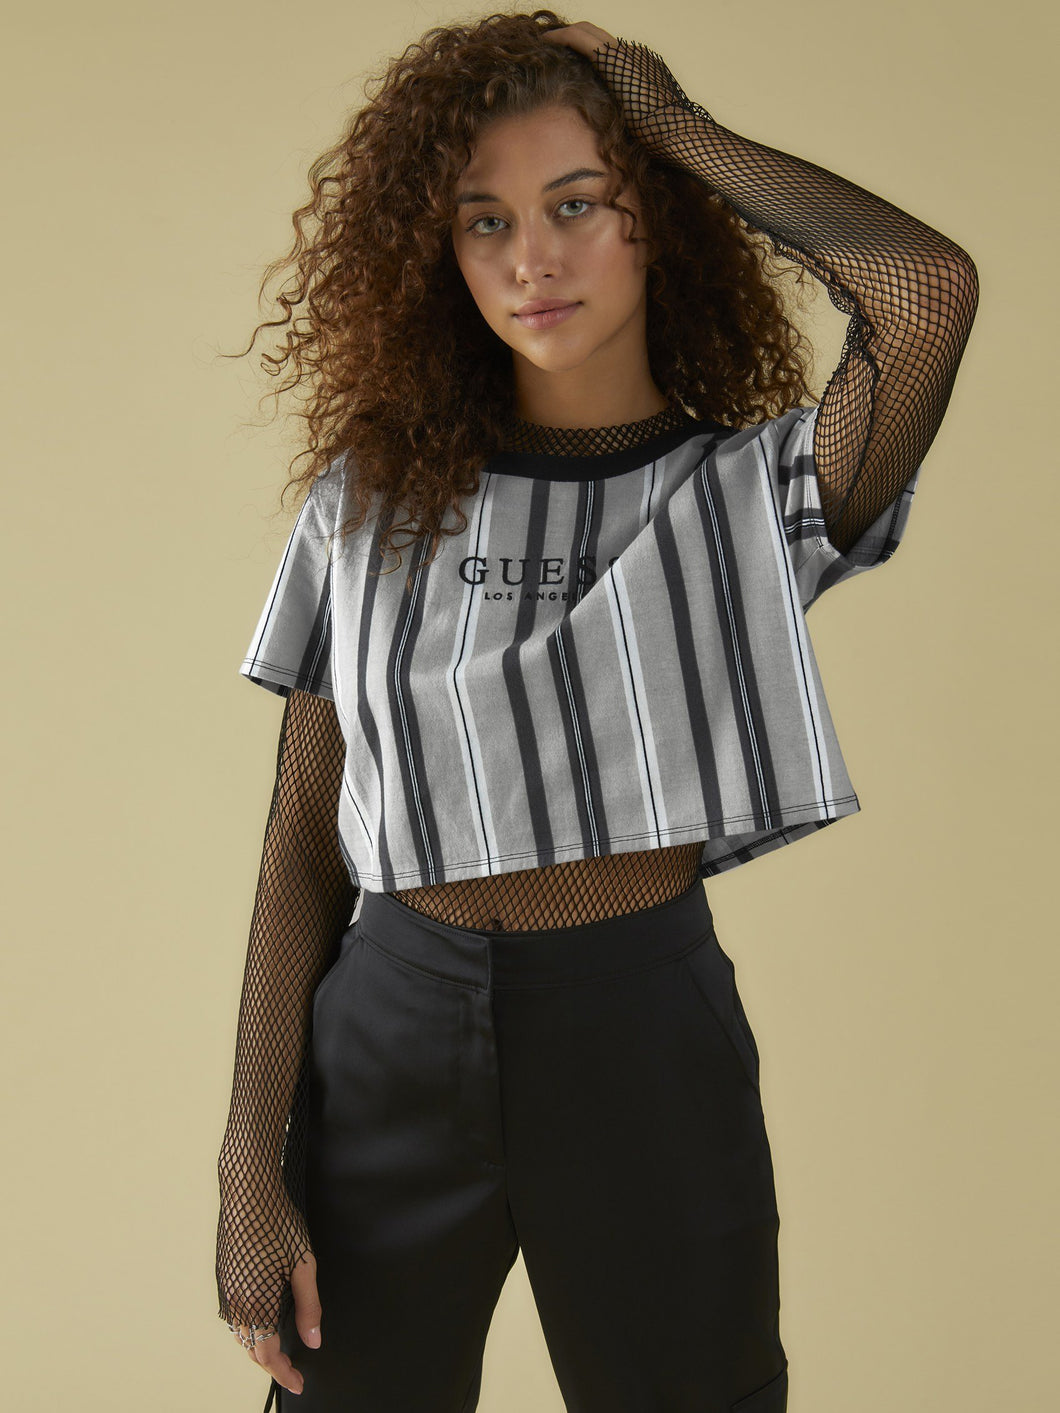 GO SS HOTSPUR CROPPED TEE